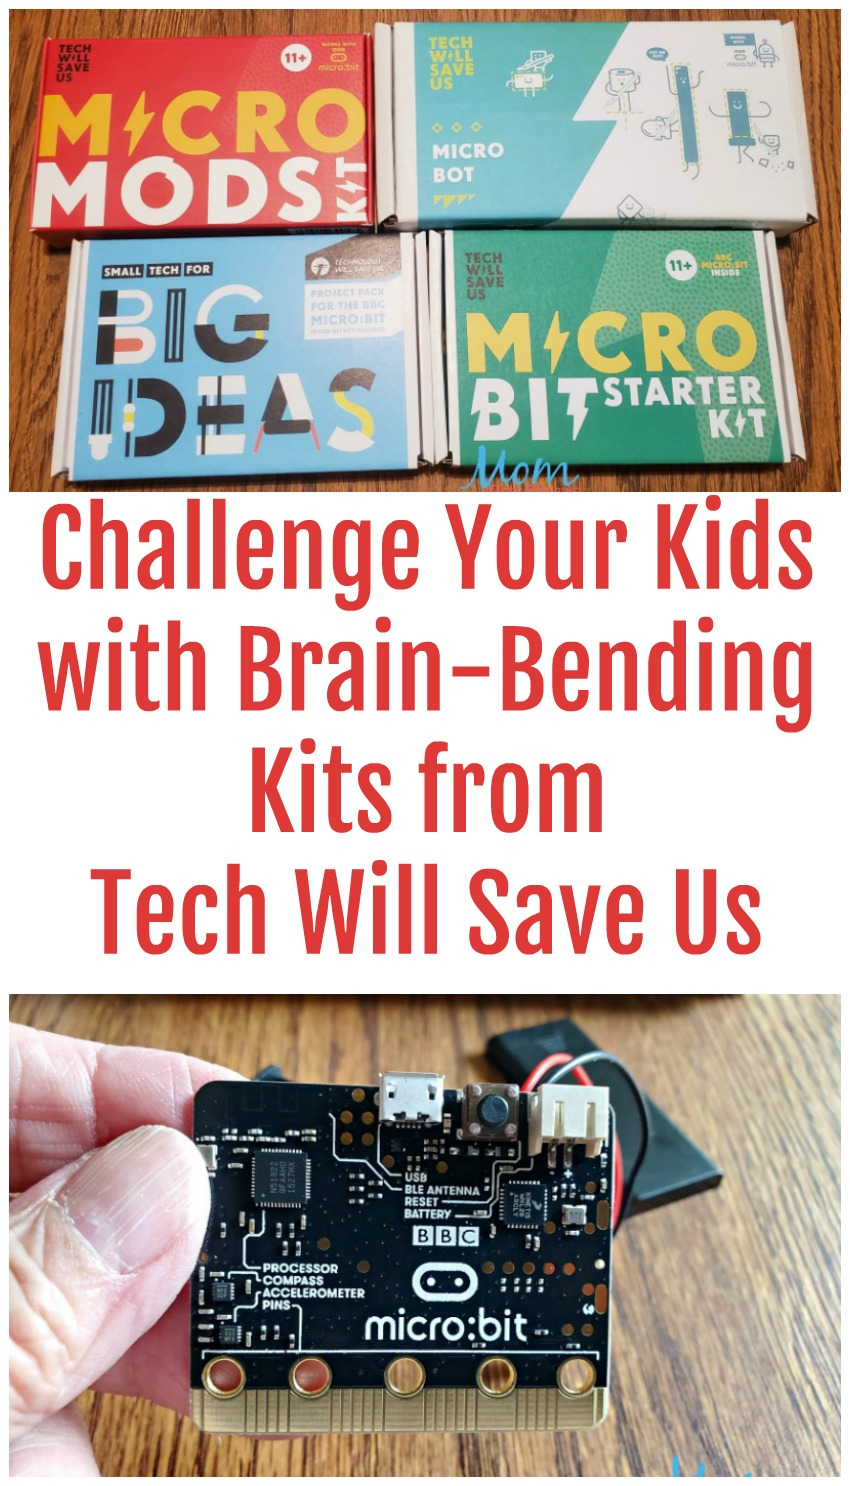 Challenge Your Kids with Brain-Bending Kits from Tech Will Save Us